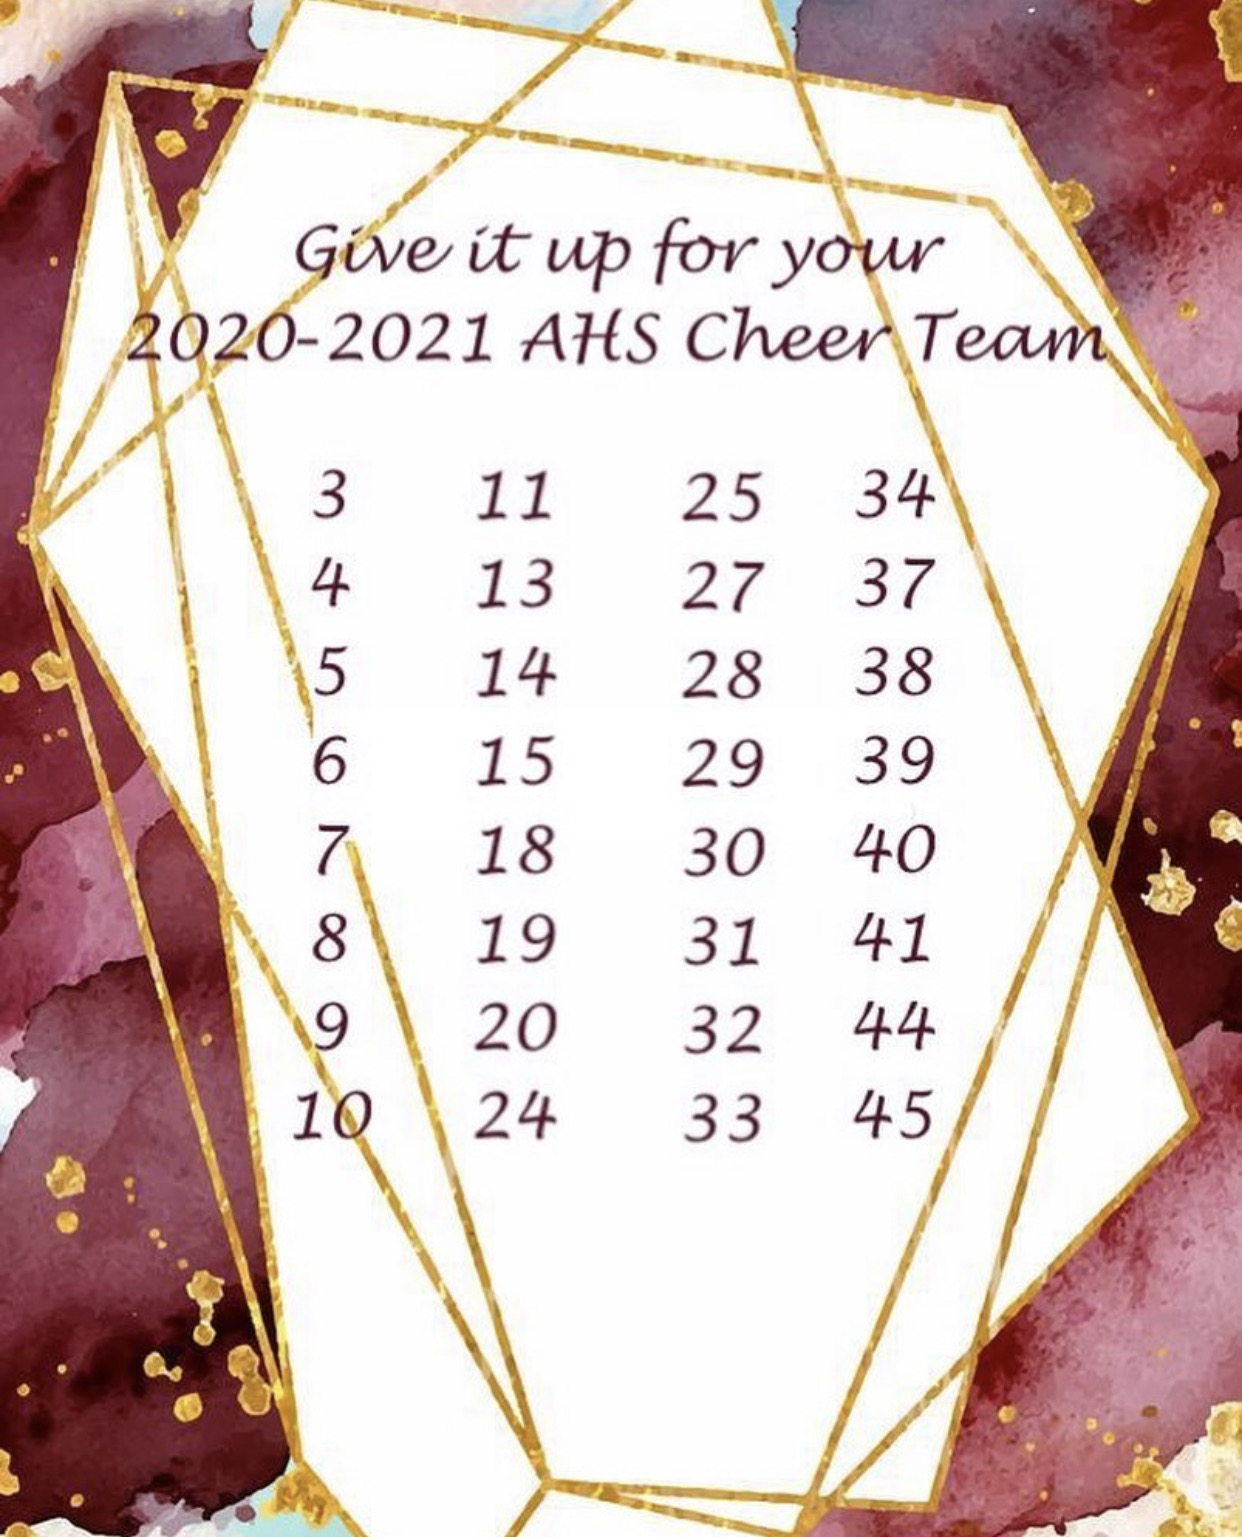 Welcome to the 2020-2021 Cheer Team! Congratulations